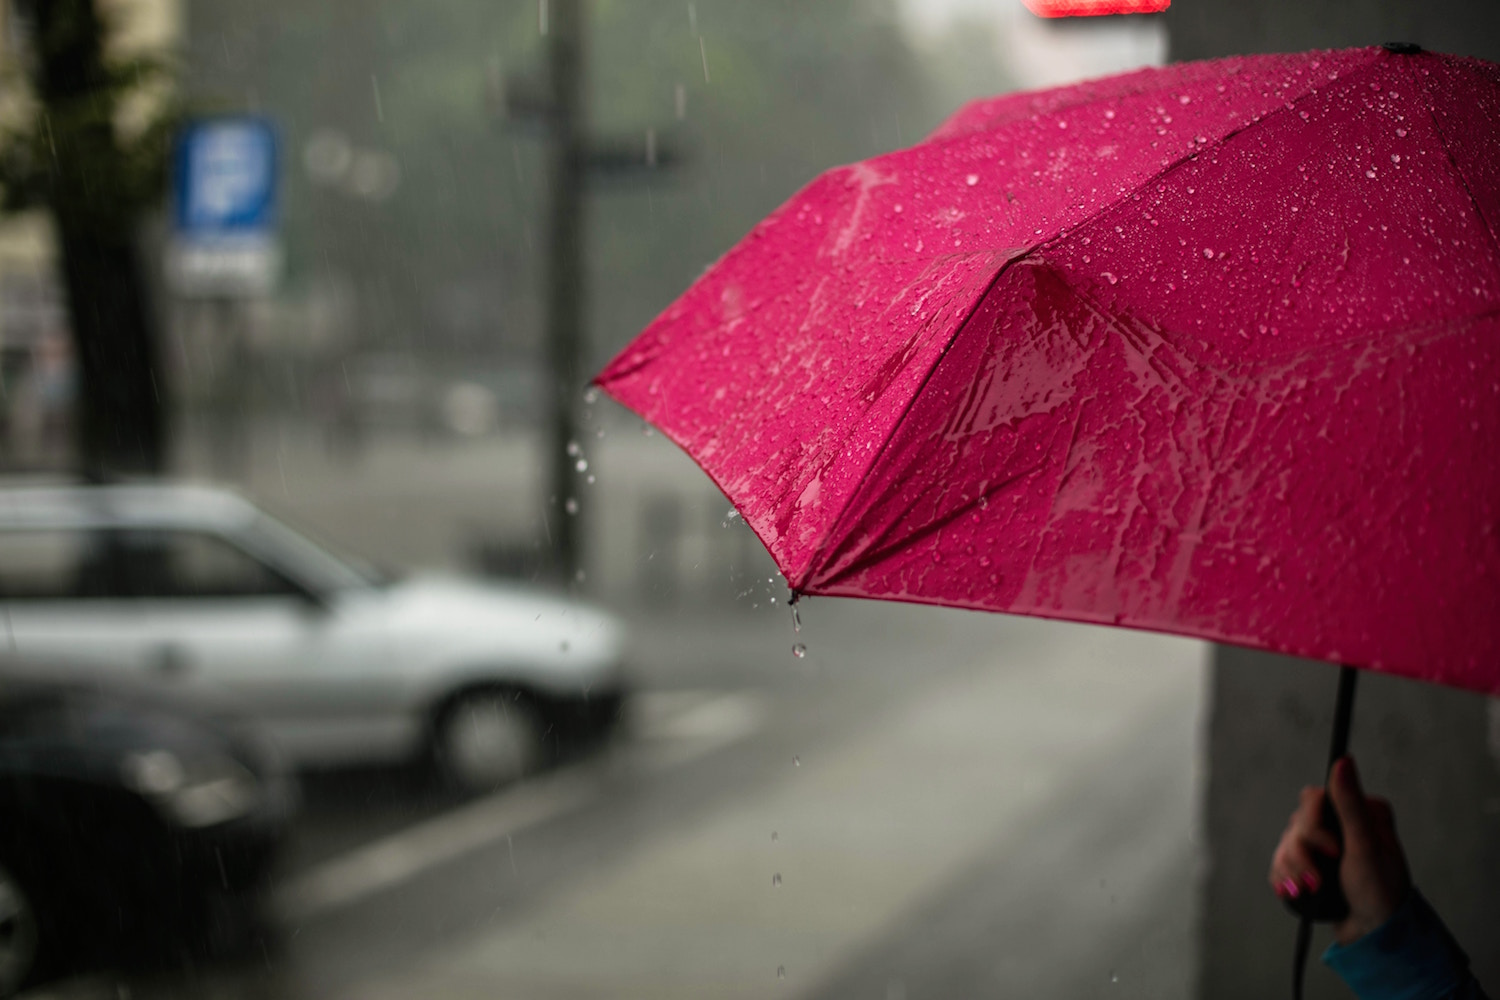 therapy-for trauma-and-abuse-umbrella.jpg